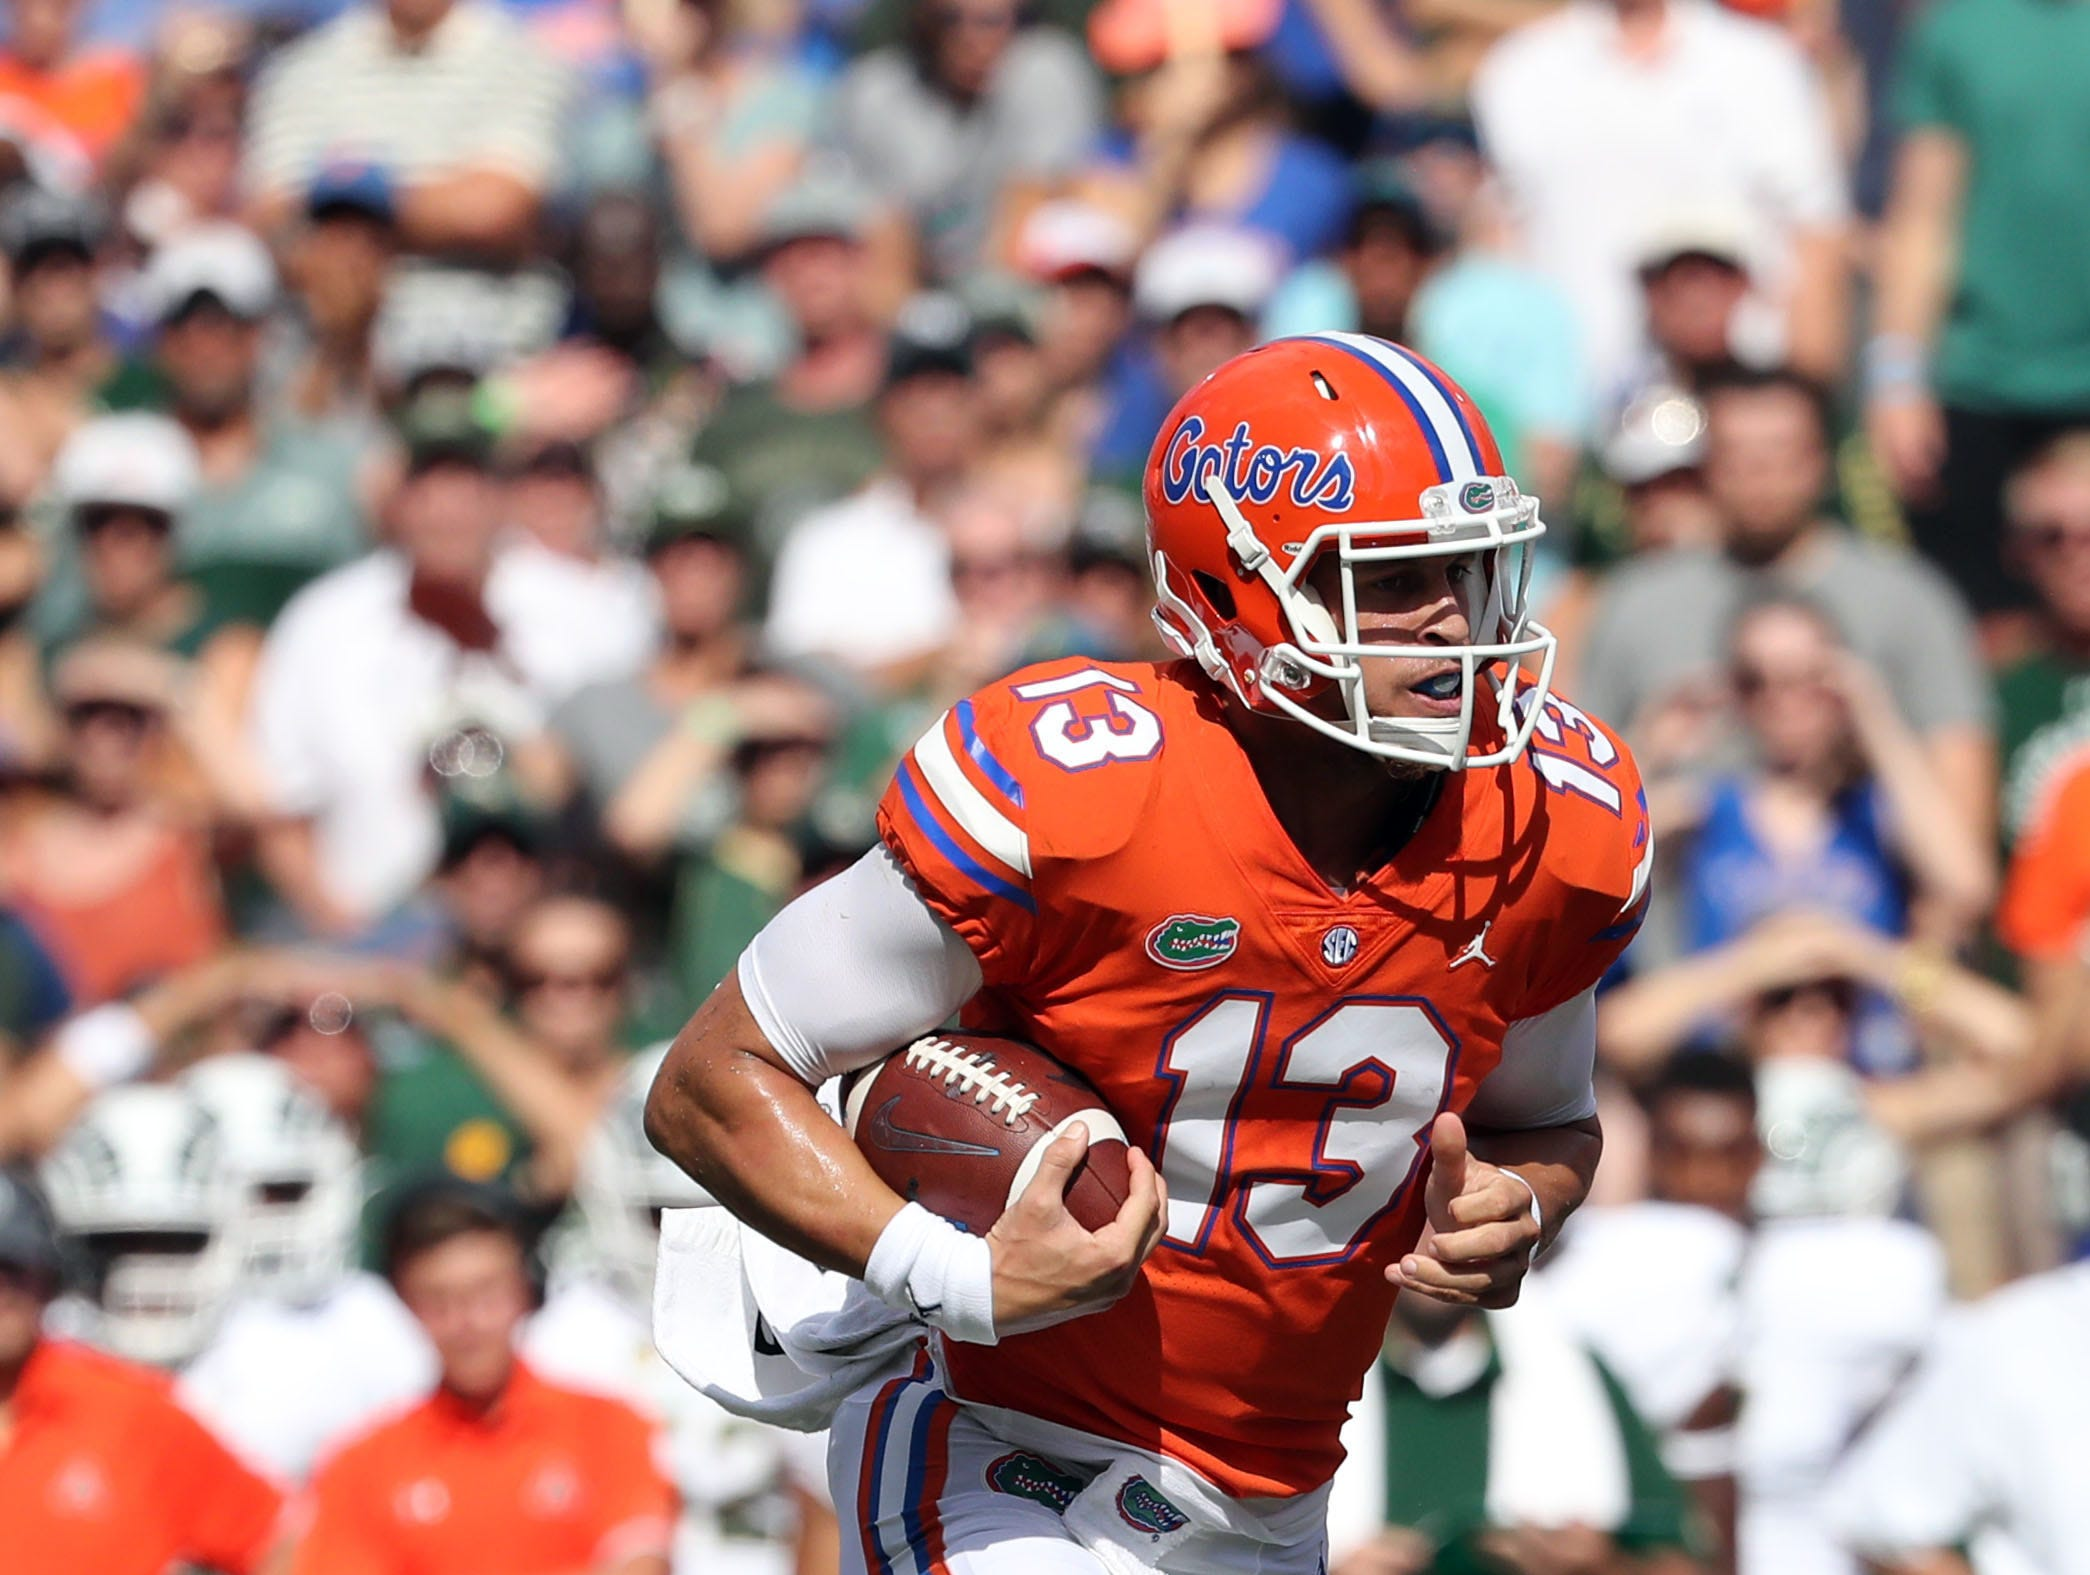 Sep 15, 2018; Gainesville, FL, USA; Florida Gators quarterback Feleipe Franks (13) runs with the ball against the Colorado State Rams during the first quarter at Ben Hill Griffin Stadium. Mandatory Credit: Kim Klement-USA TODAY Sports